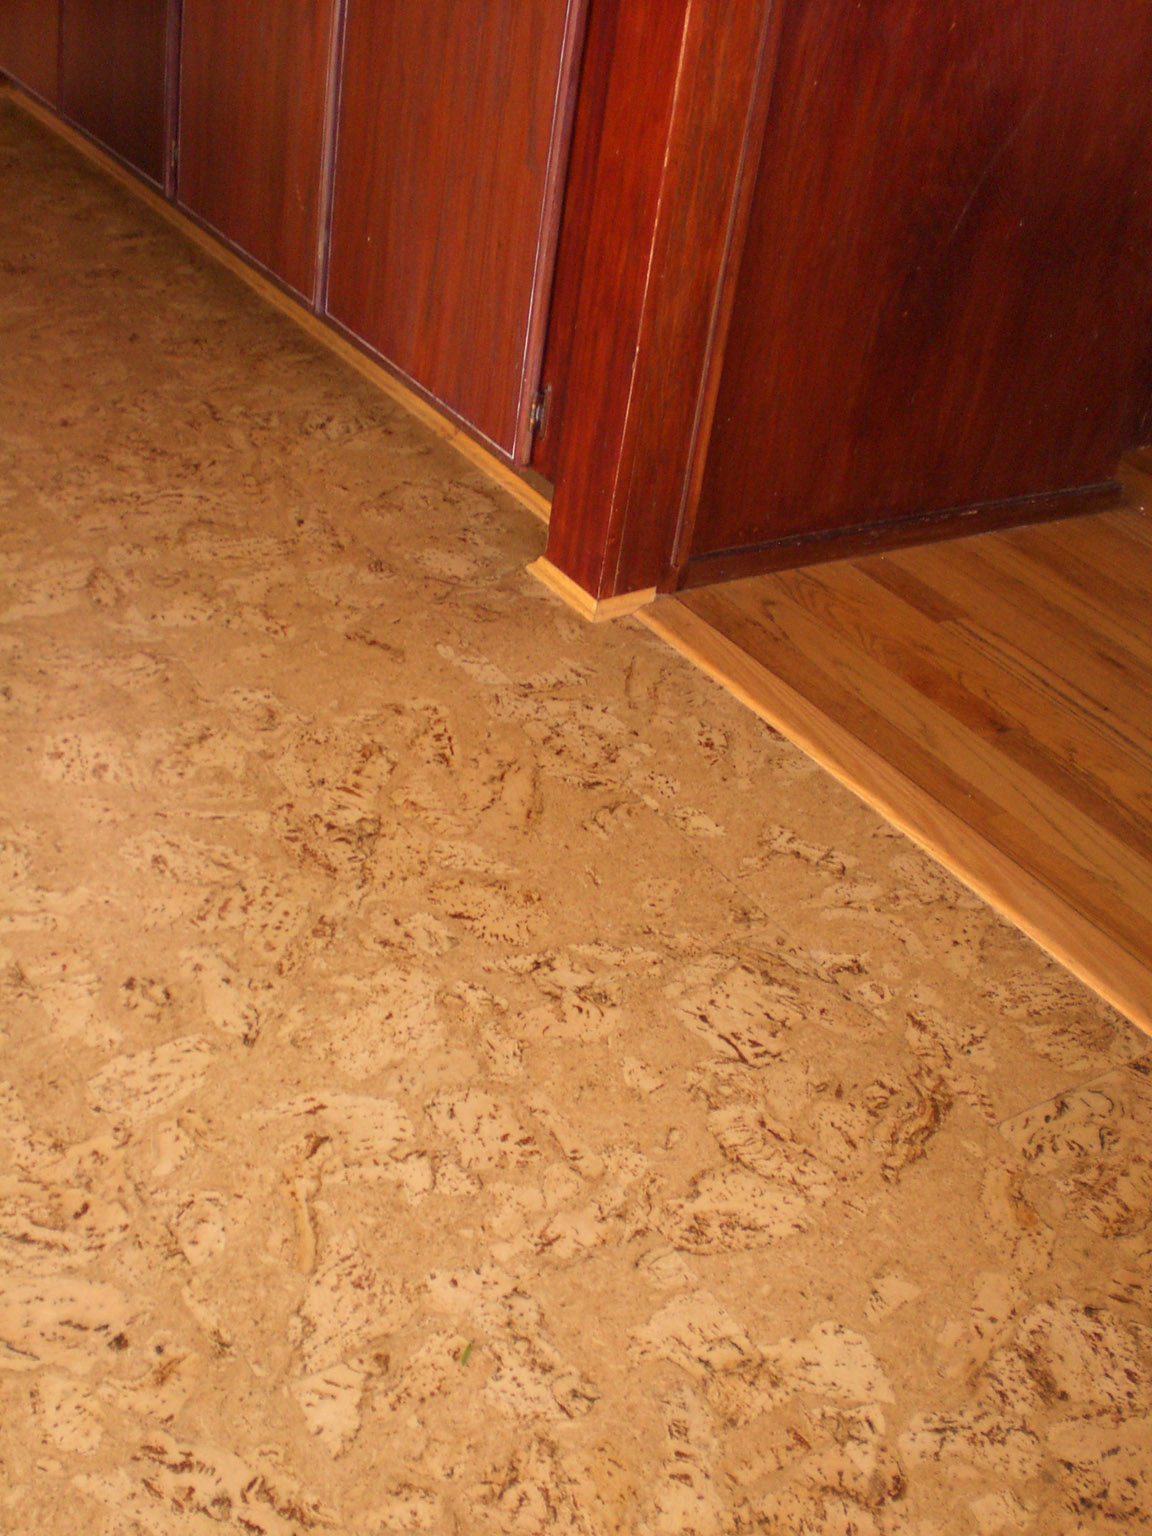 Cork Floor Tiles For Kitchen Cork Floor Tiles For Bathrooms Cork Floor